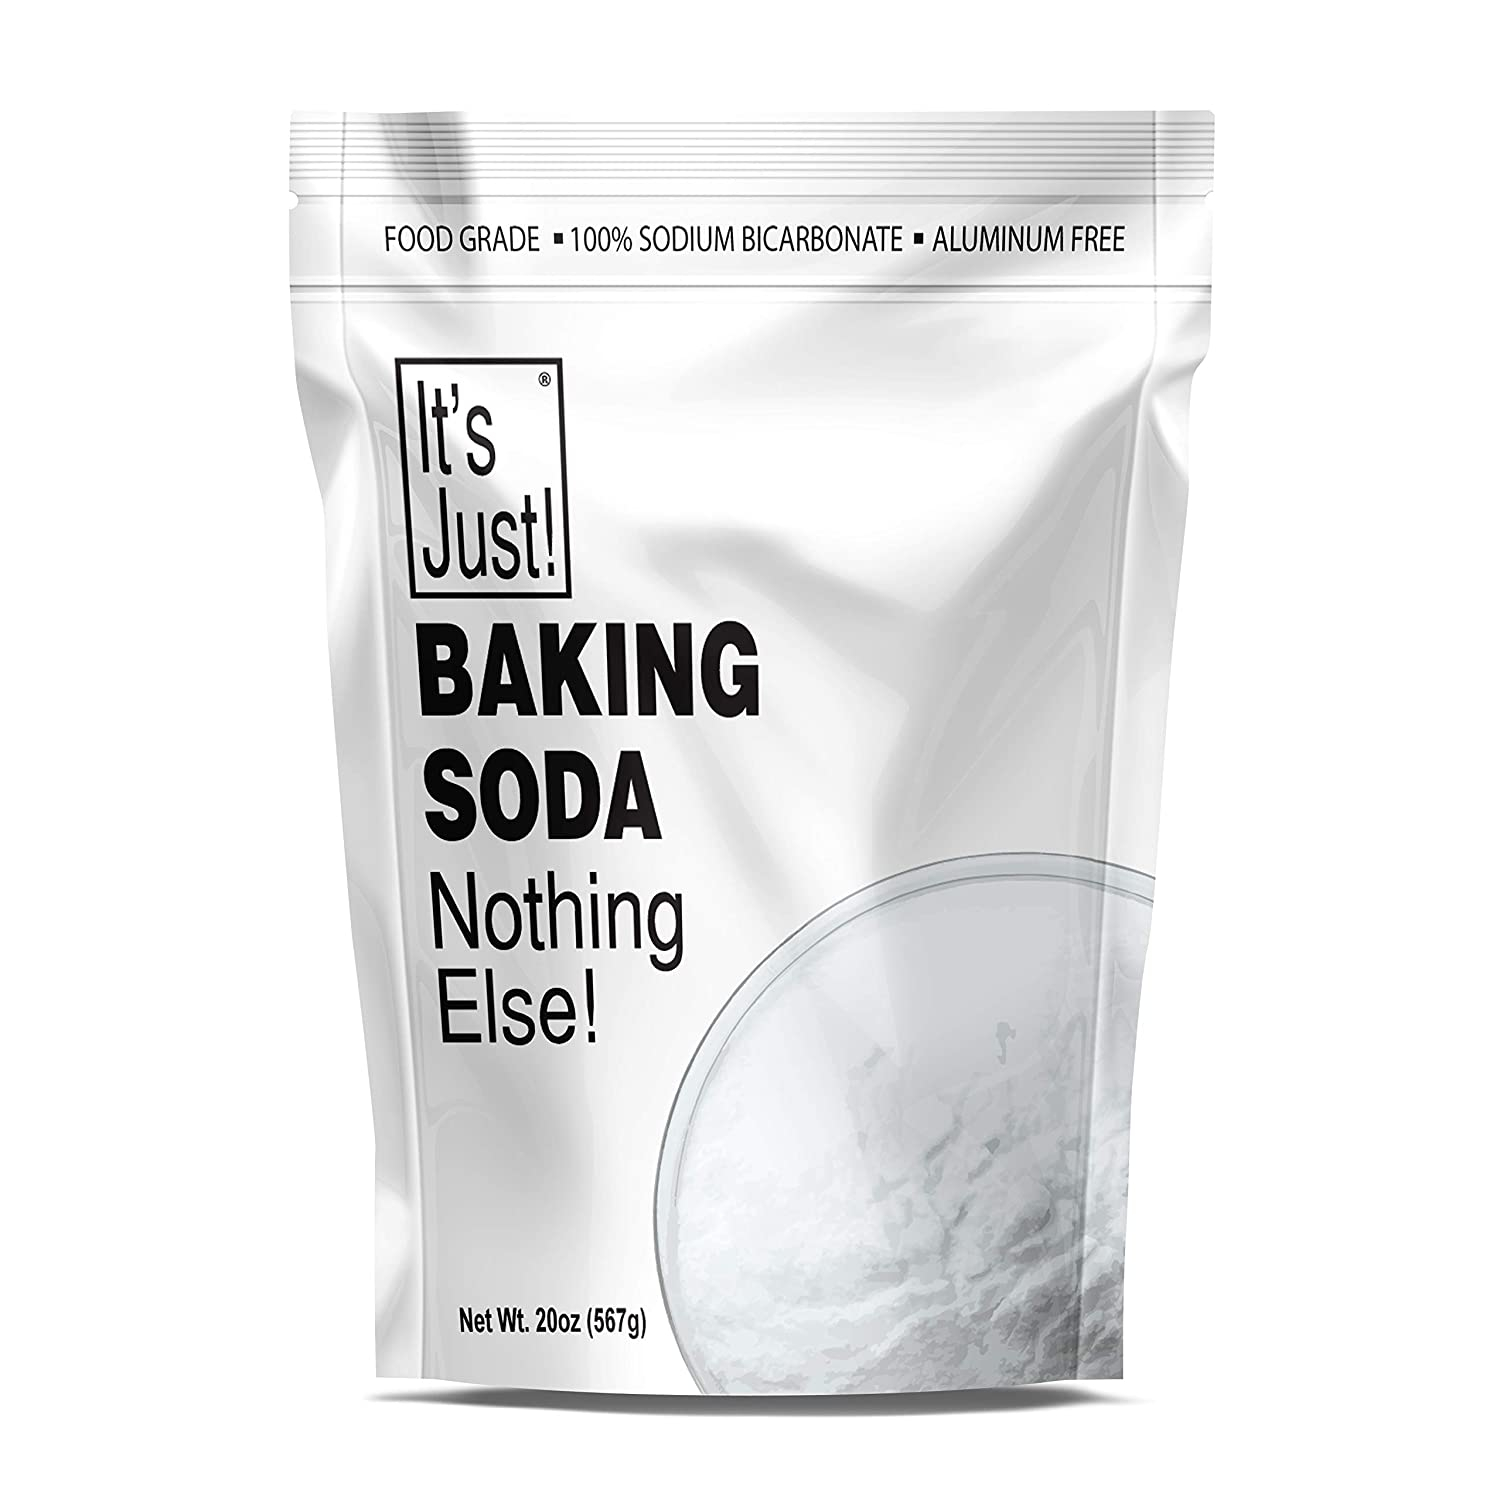 It's Just - Baking Soda, Sodium Bicarbonate, Food Grade, Made in USA (1.25 Pound)